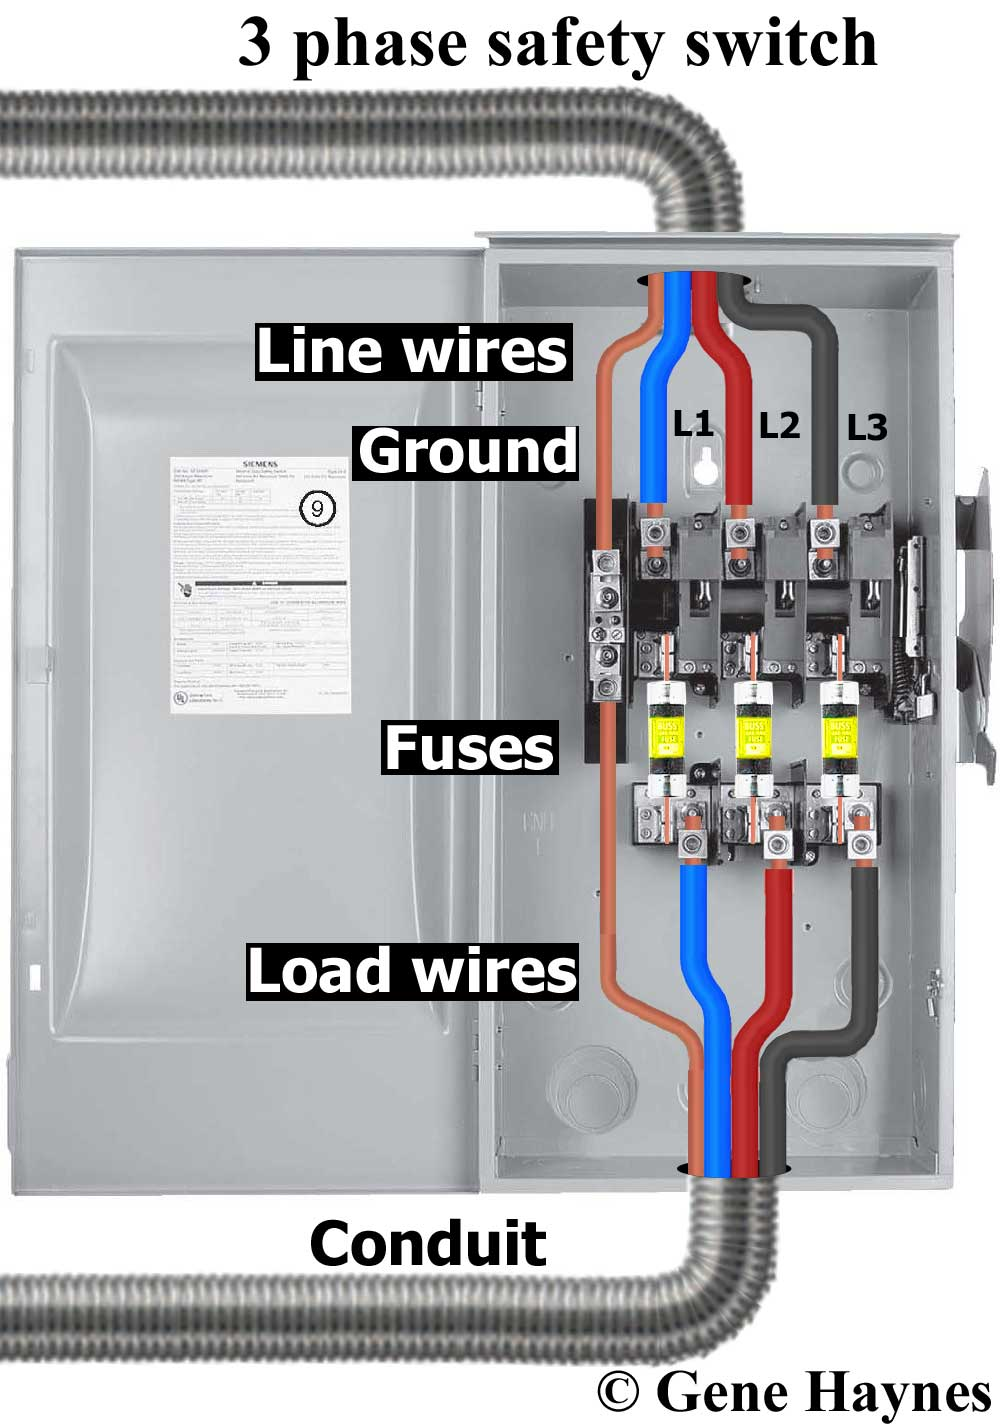 medium resolution of how to wire safety switchlarger image 3 pole safety switch example shows fusable this is